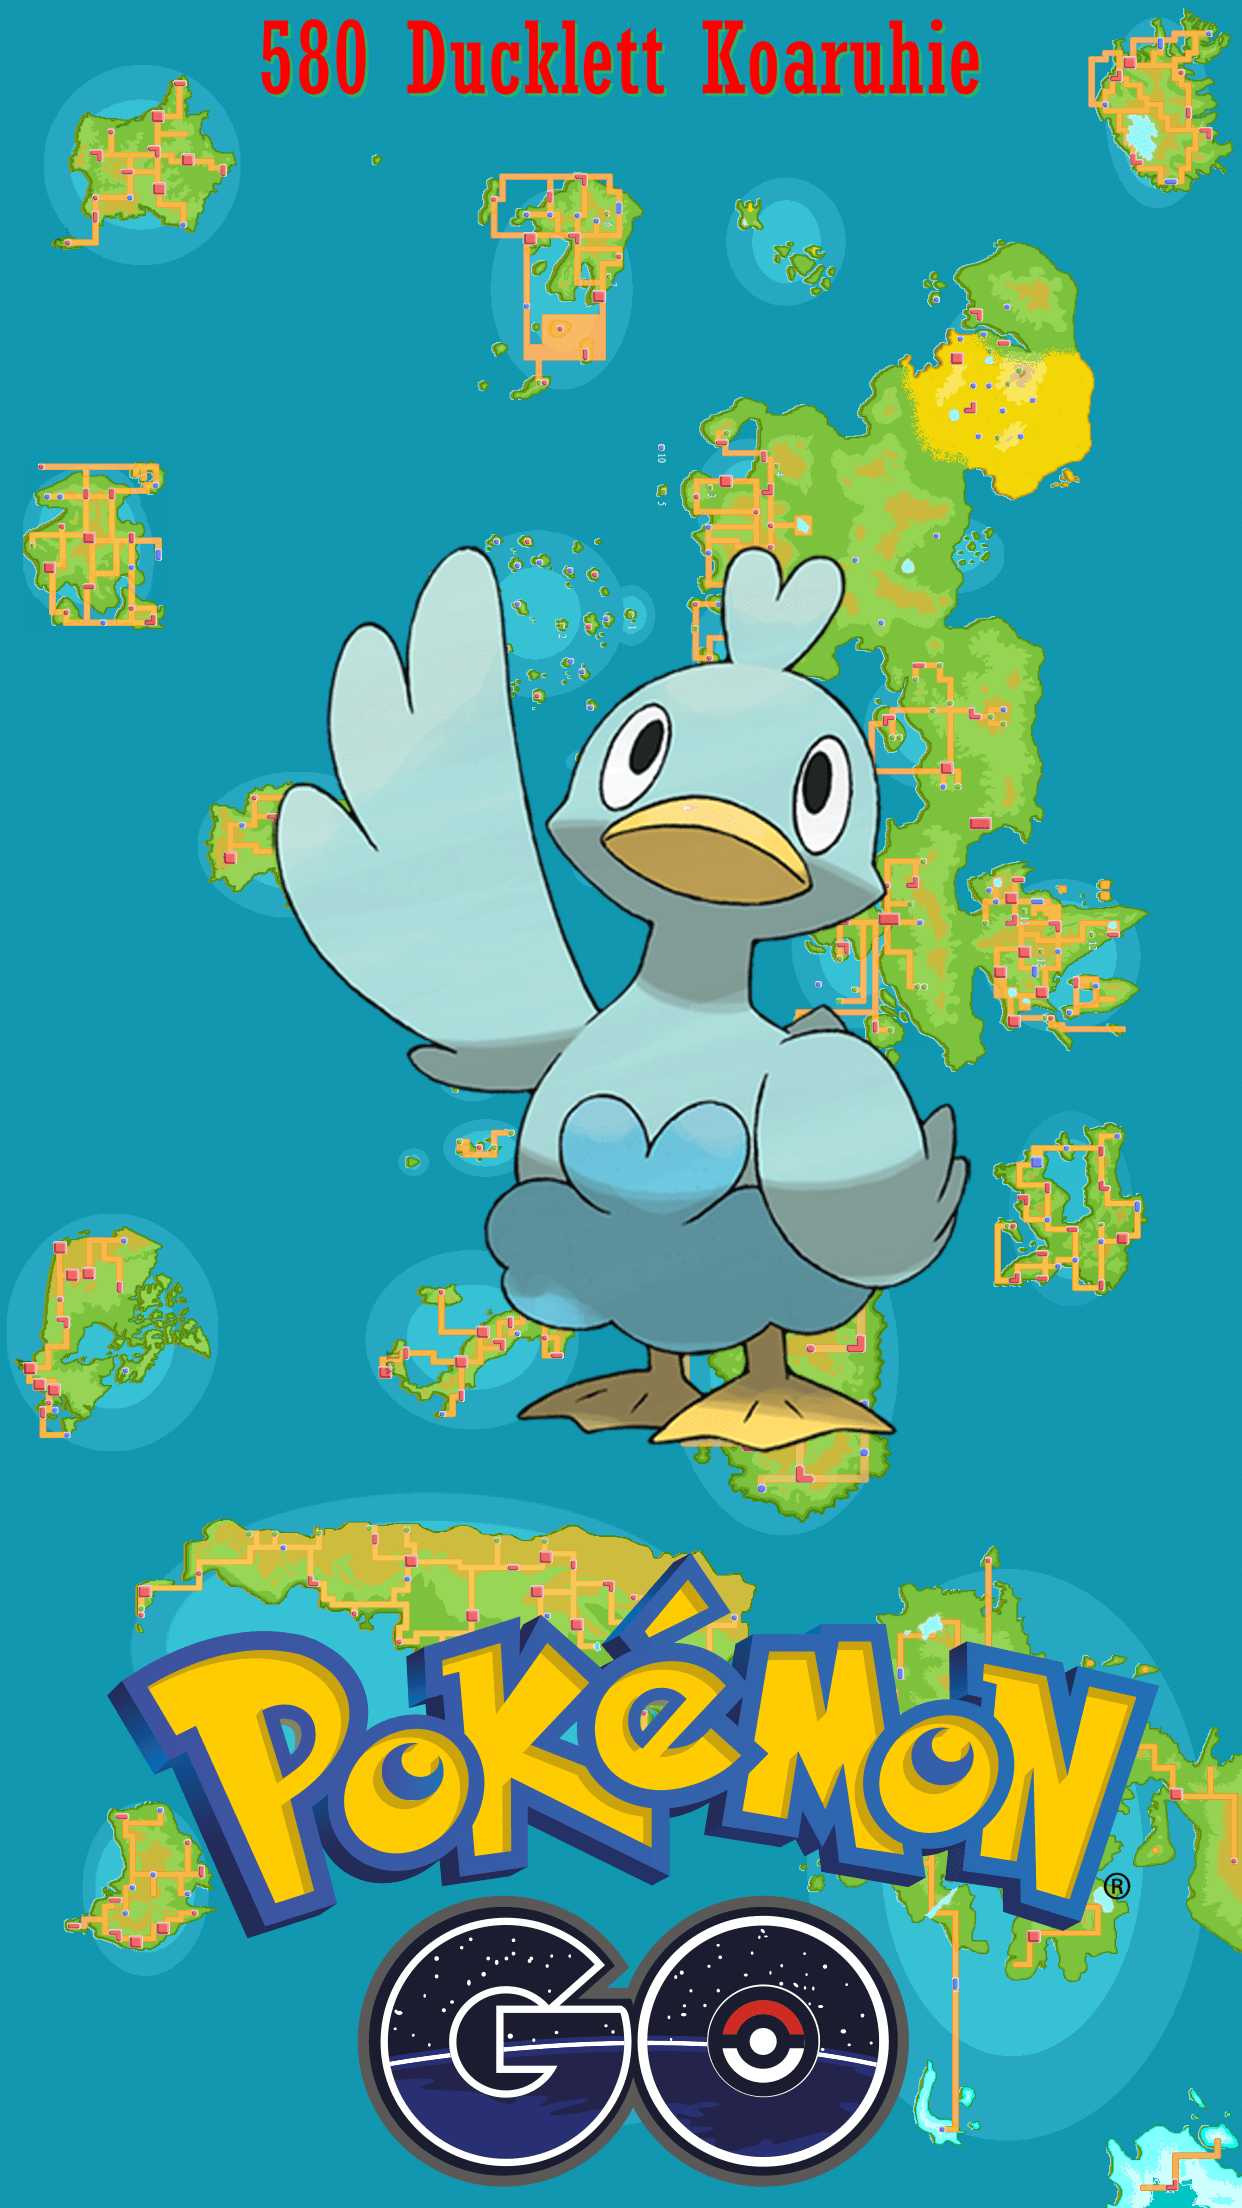 580 Street Map Ducklett Koaruhie | Wallpaper